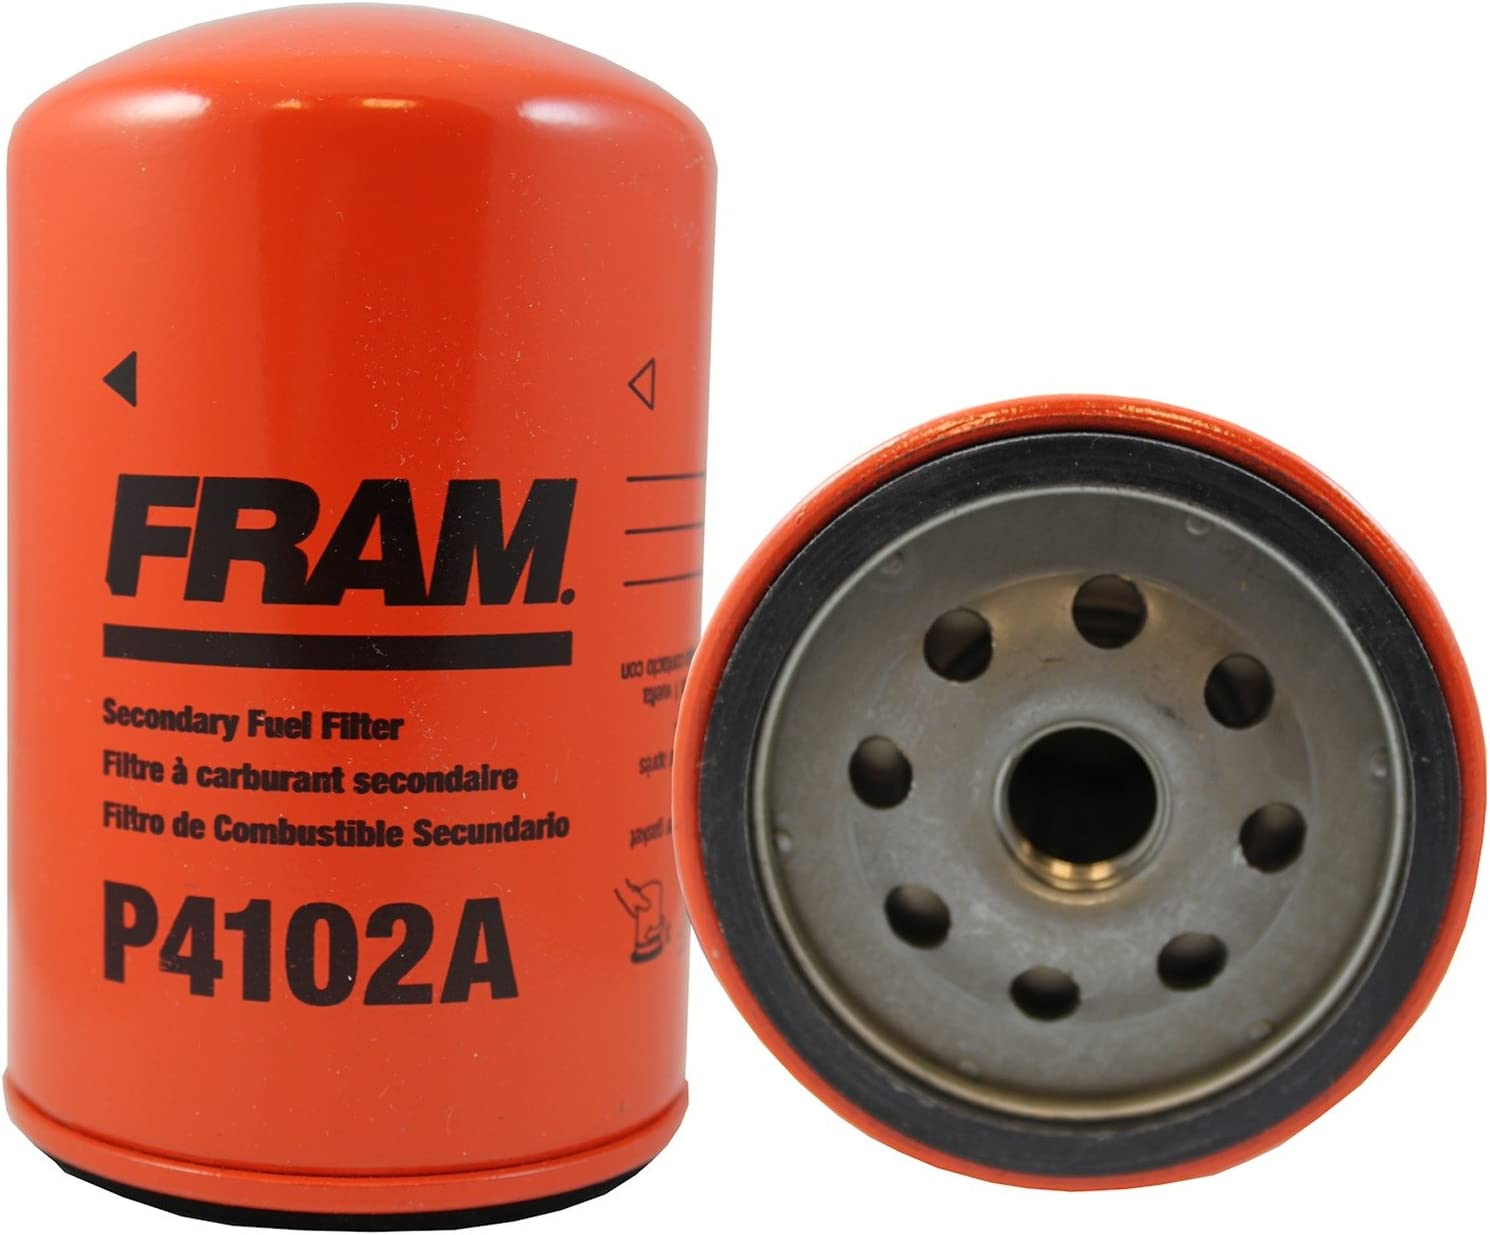 [DIAGRAM_5FD]  Amazon.com: FRAM P4102A Heavy Duty Oil and Fuel Filter: Automotive | Fram Fuel Filter Assembly |  | Amazon.com